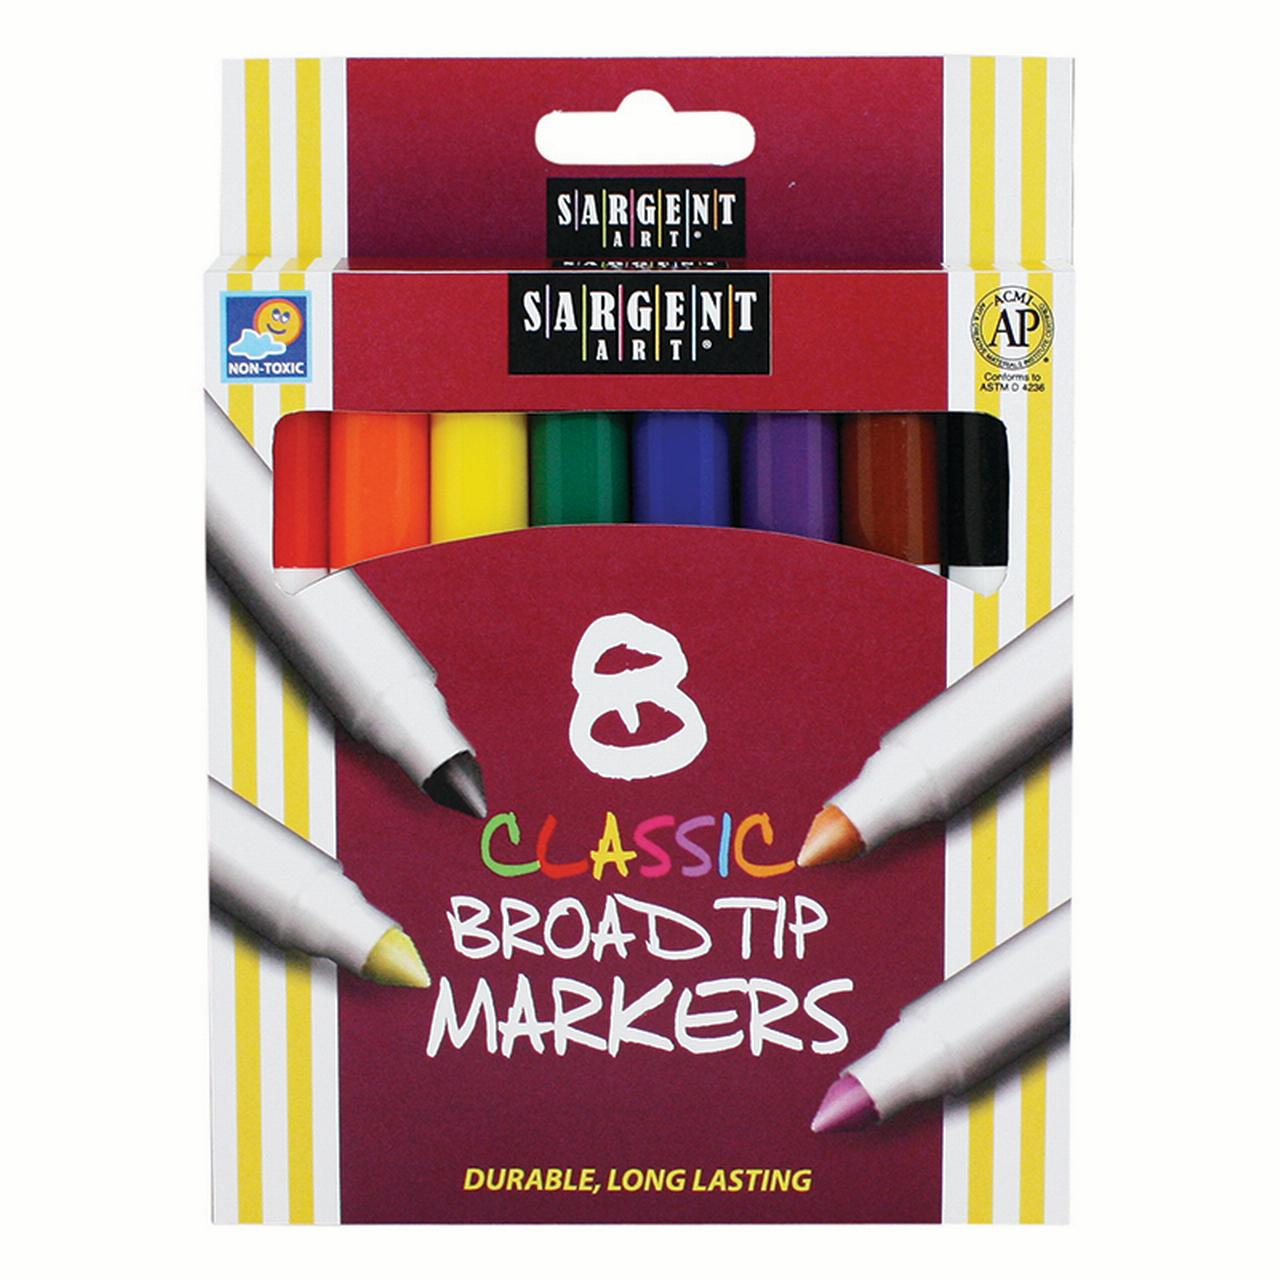 SARGENT ART CLASSIC MARKERS BROAD TIP 8 COLORS